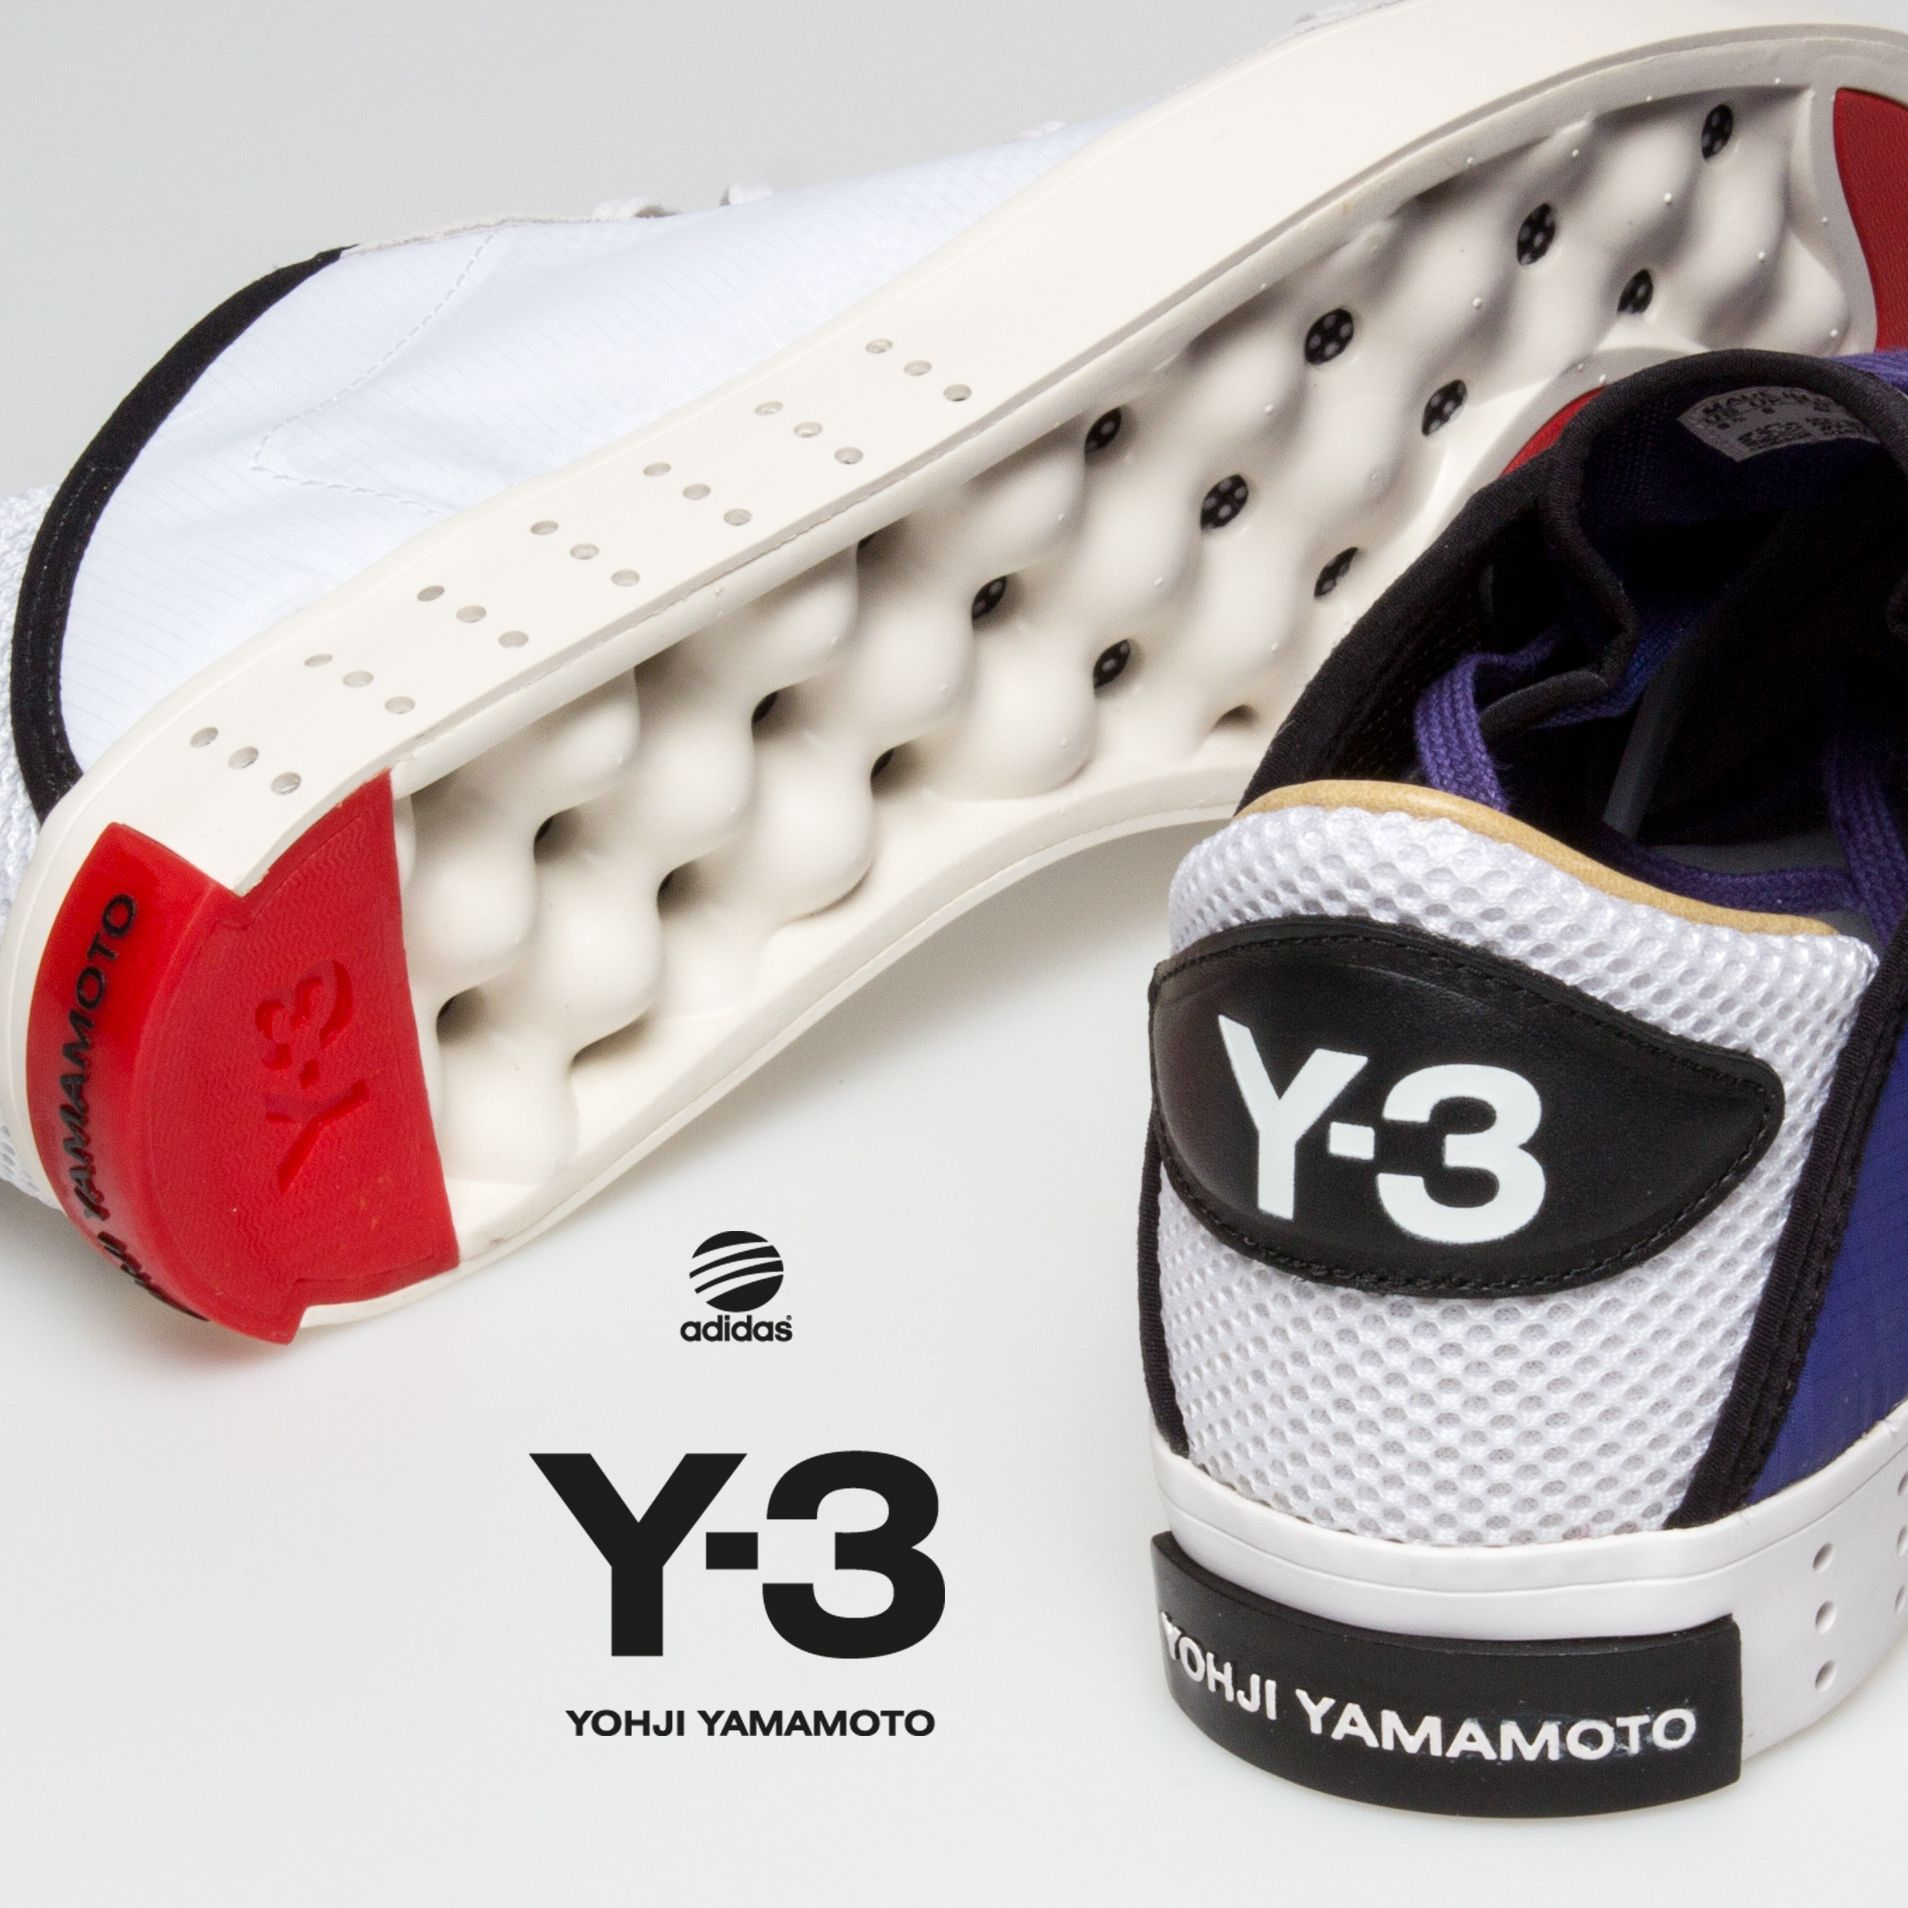 8b3147196 Yoji Yamomoto an influential Japanese fashion designer collaborates with  adidas to create these beautiful Y-3 sneakers for Men.